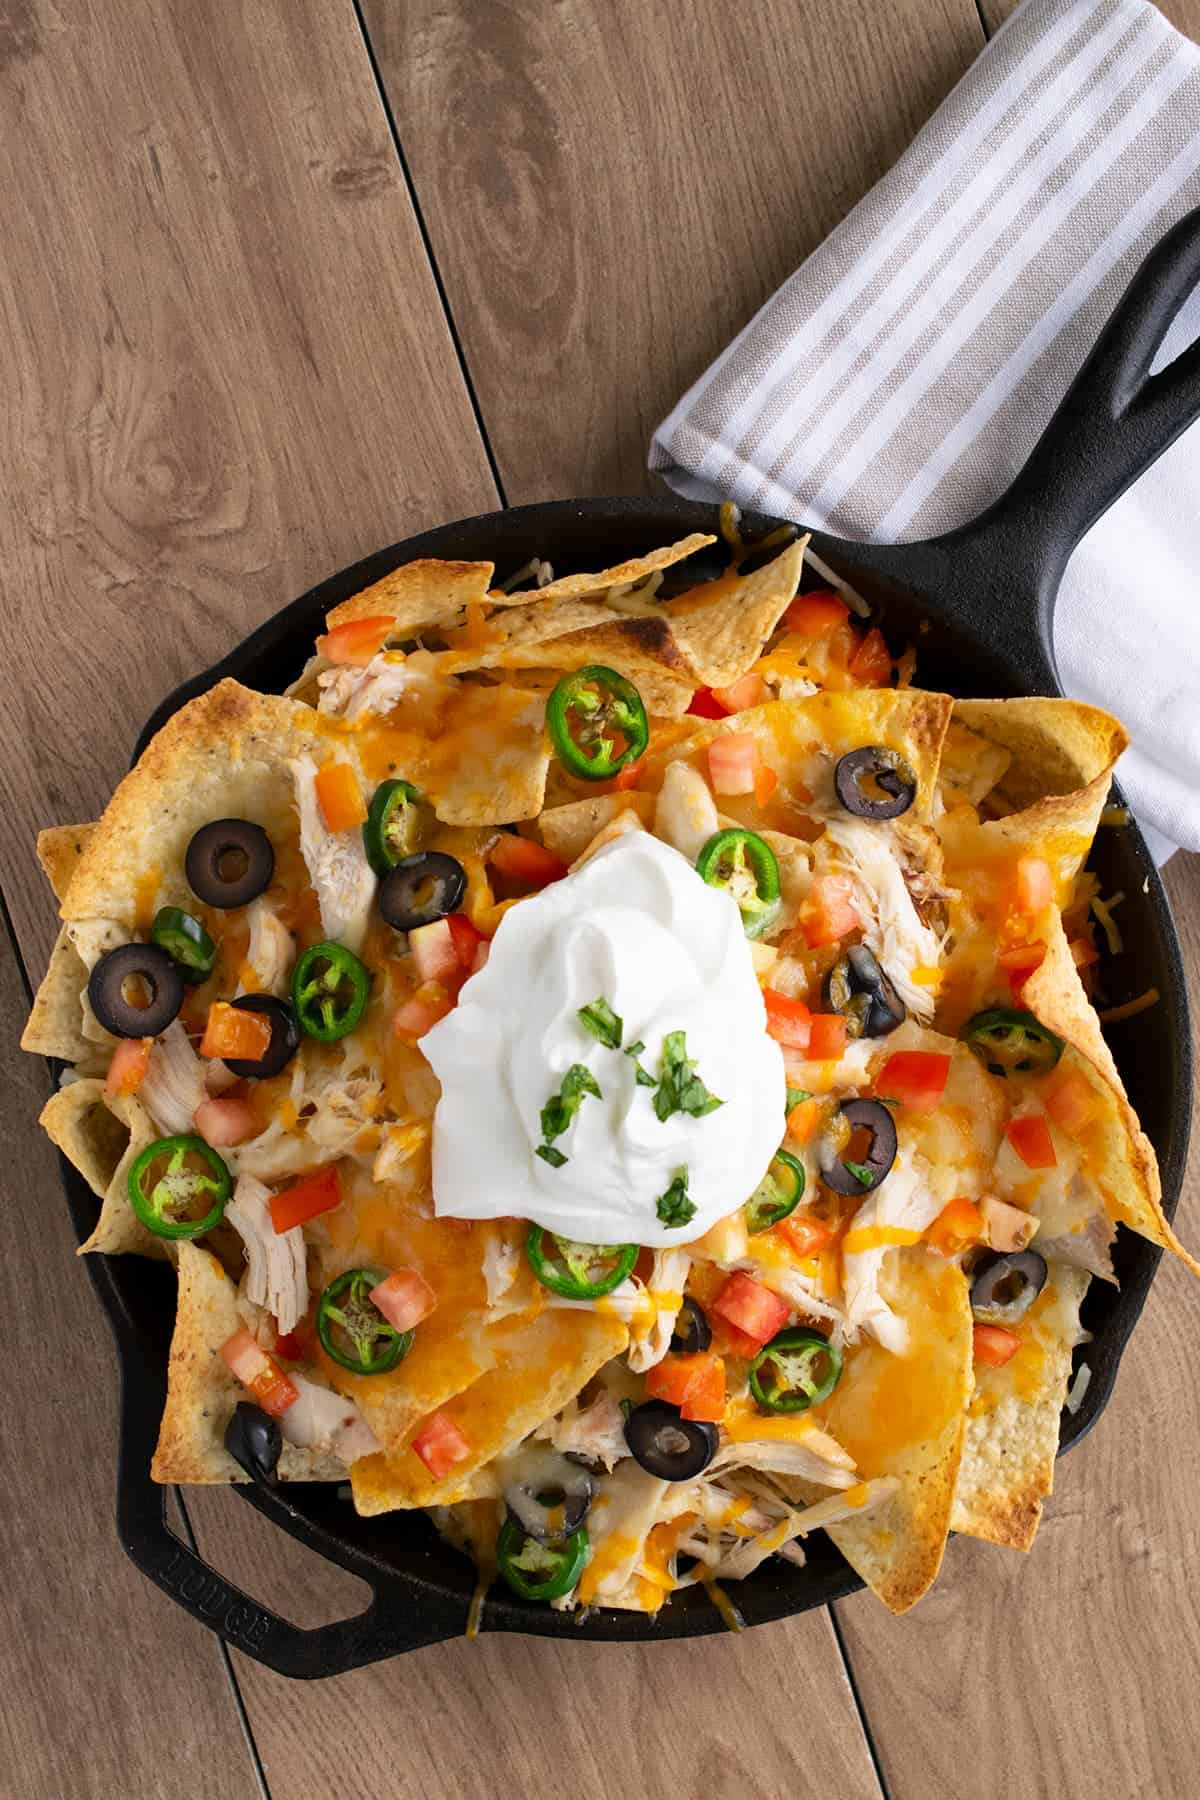 Loaded Chicken nachos topped with melted cheese, black olives, diced tomatoes, jalapenos, and sour cream in cast iron skillet on wood table next to kitchen towel.